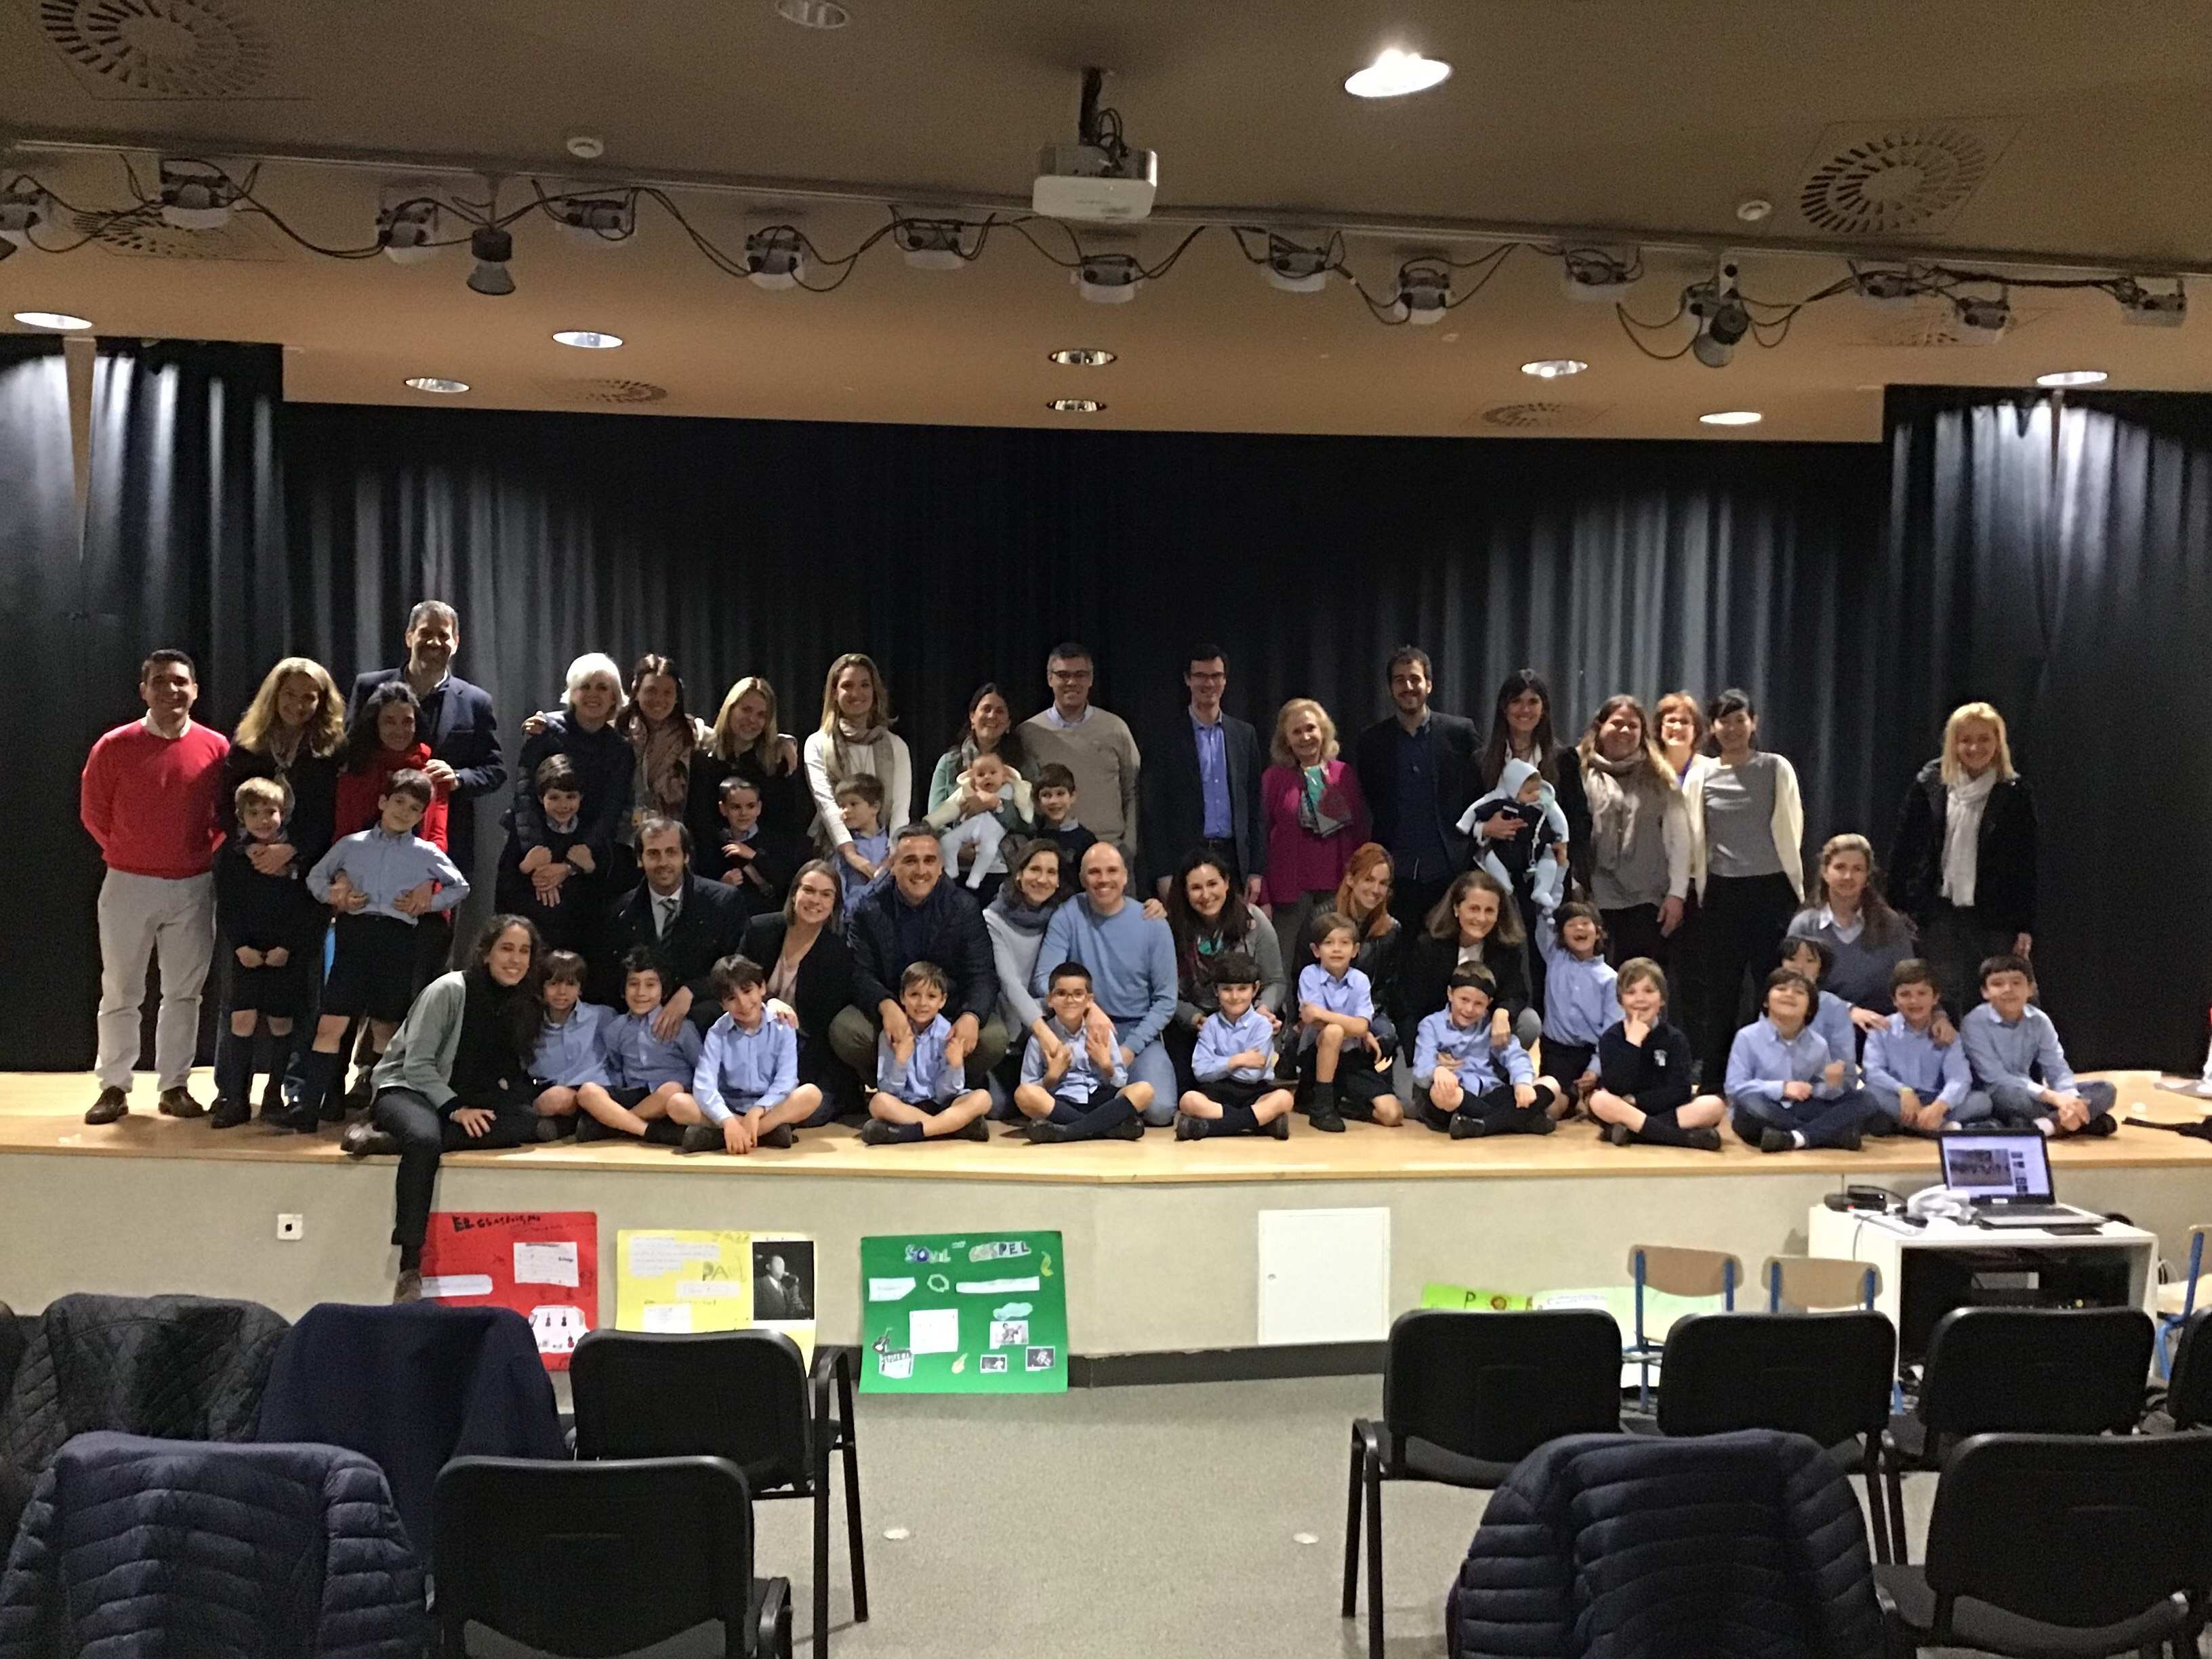 Public classes in 2nd grade Colegio Concertado Barcelona